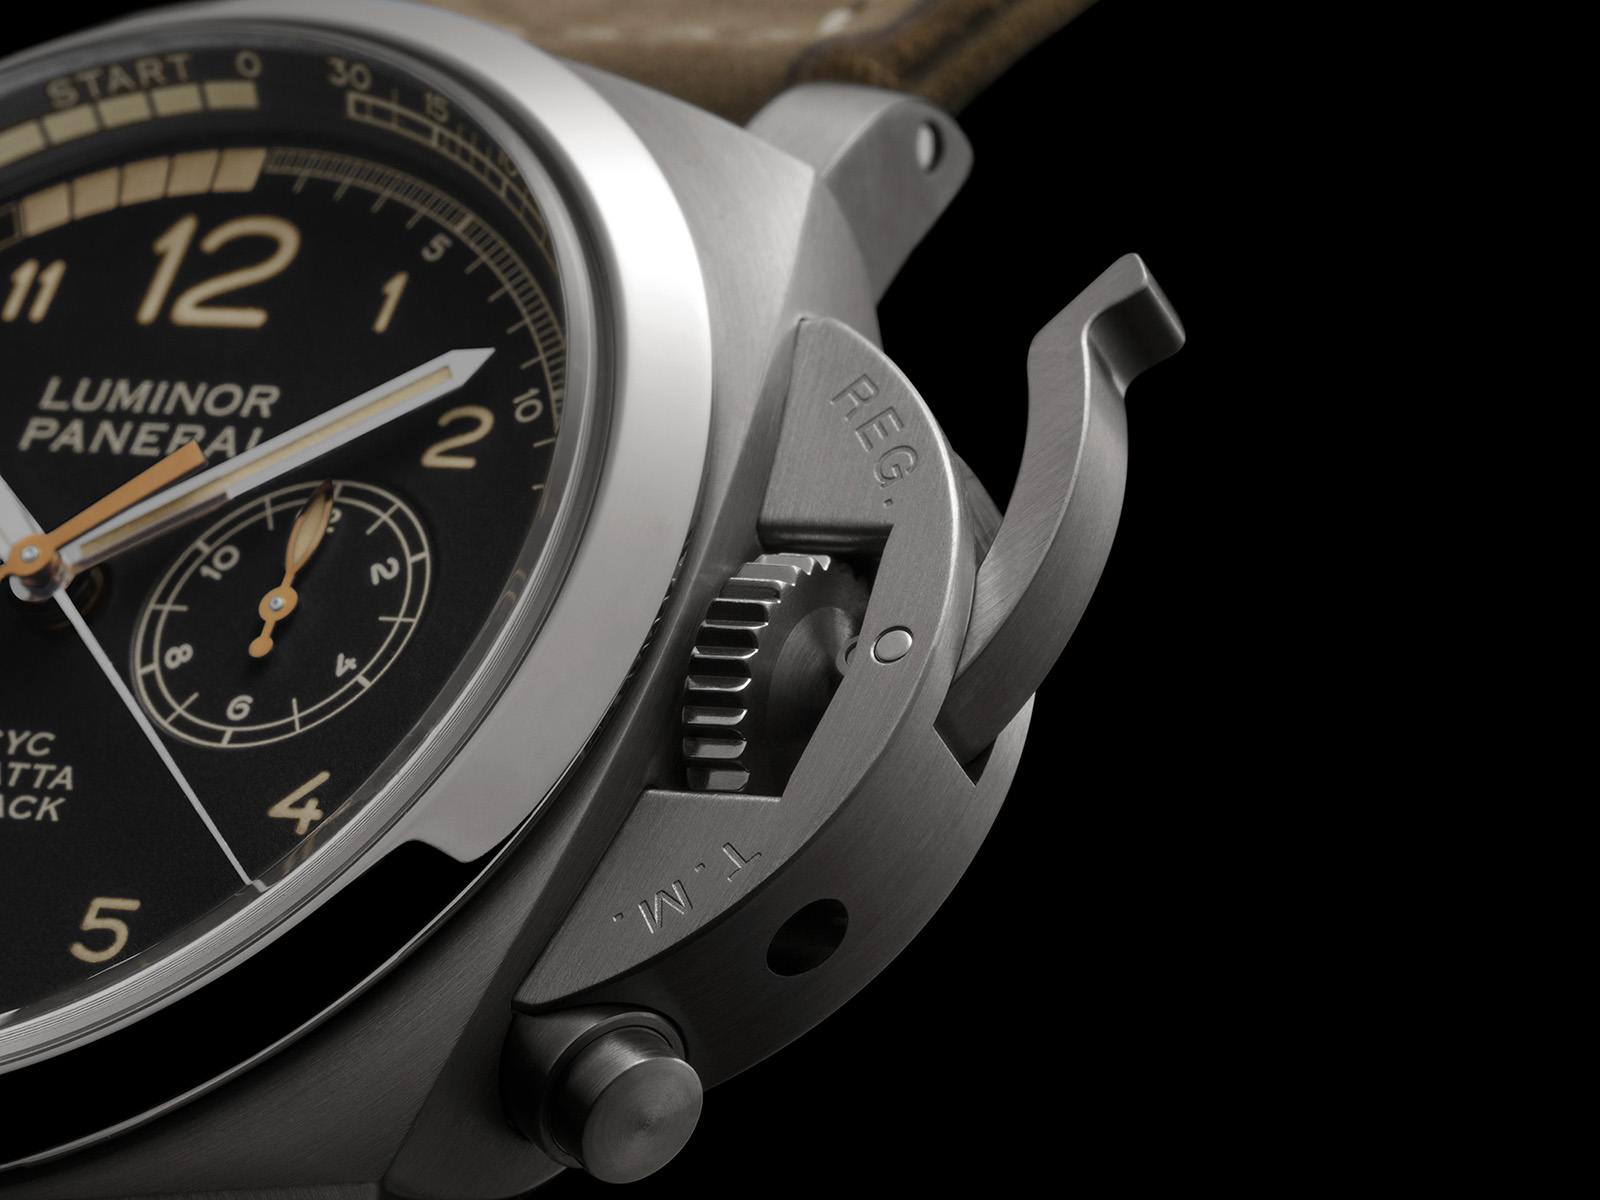 Panerai Luminor 1950 PCYC Regatta3 Days Chrono Regatta Flyback Automatic Pam652